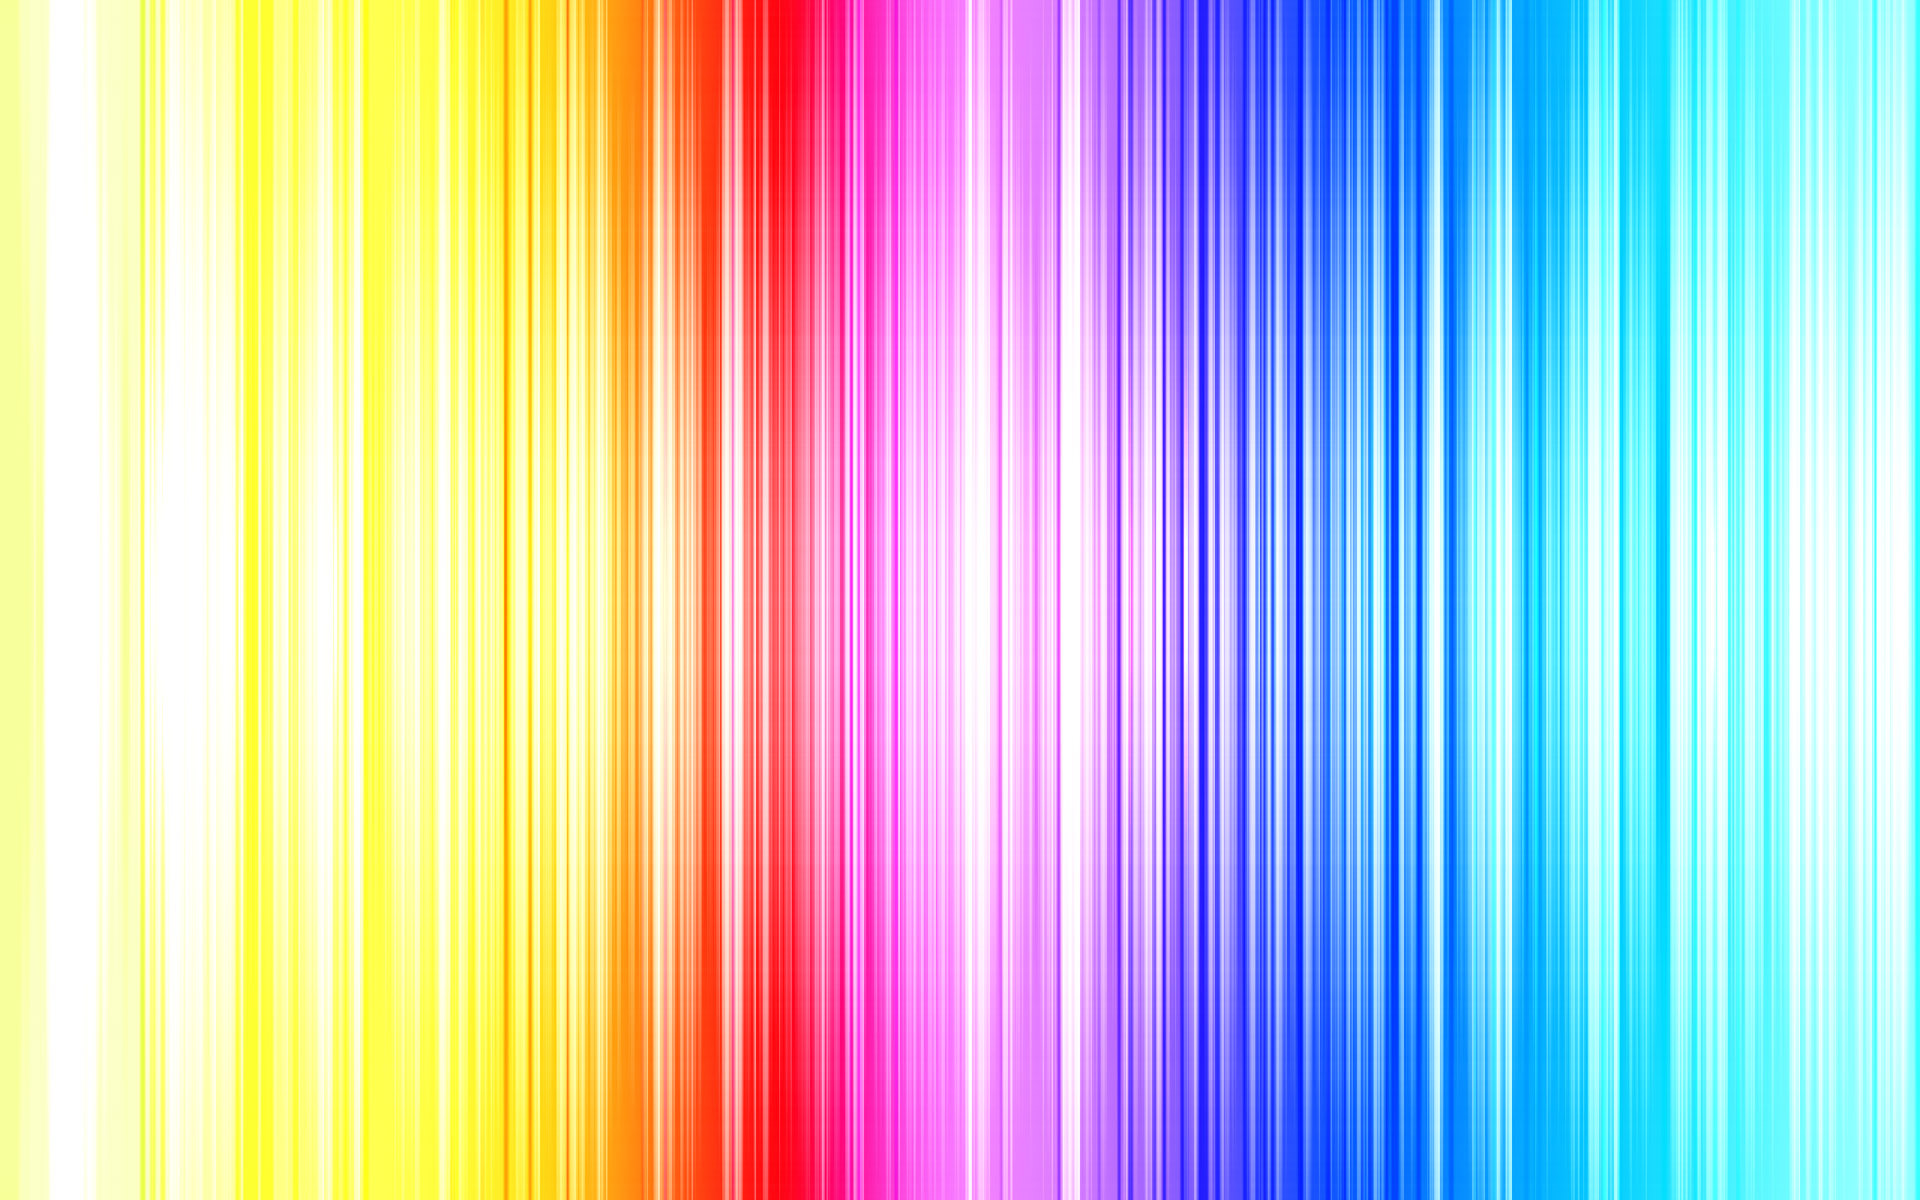 Colorful Backgrounds HD Desktop Wallpaper